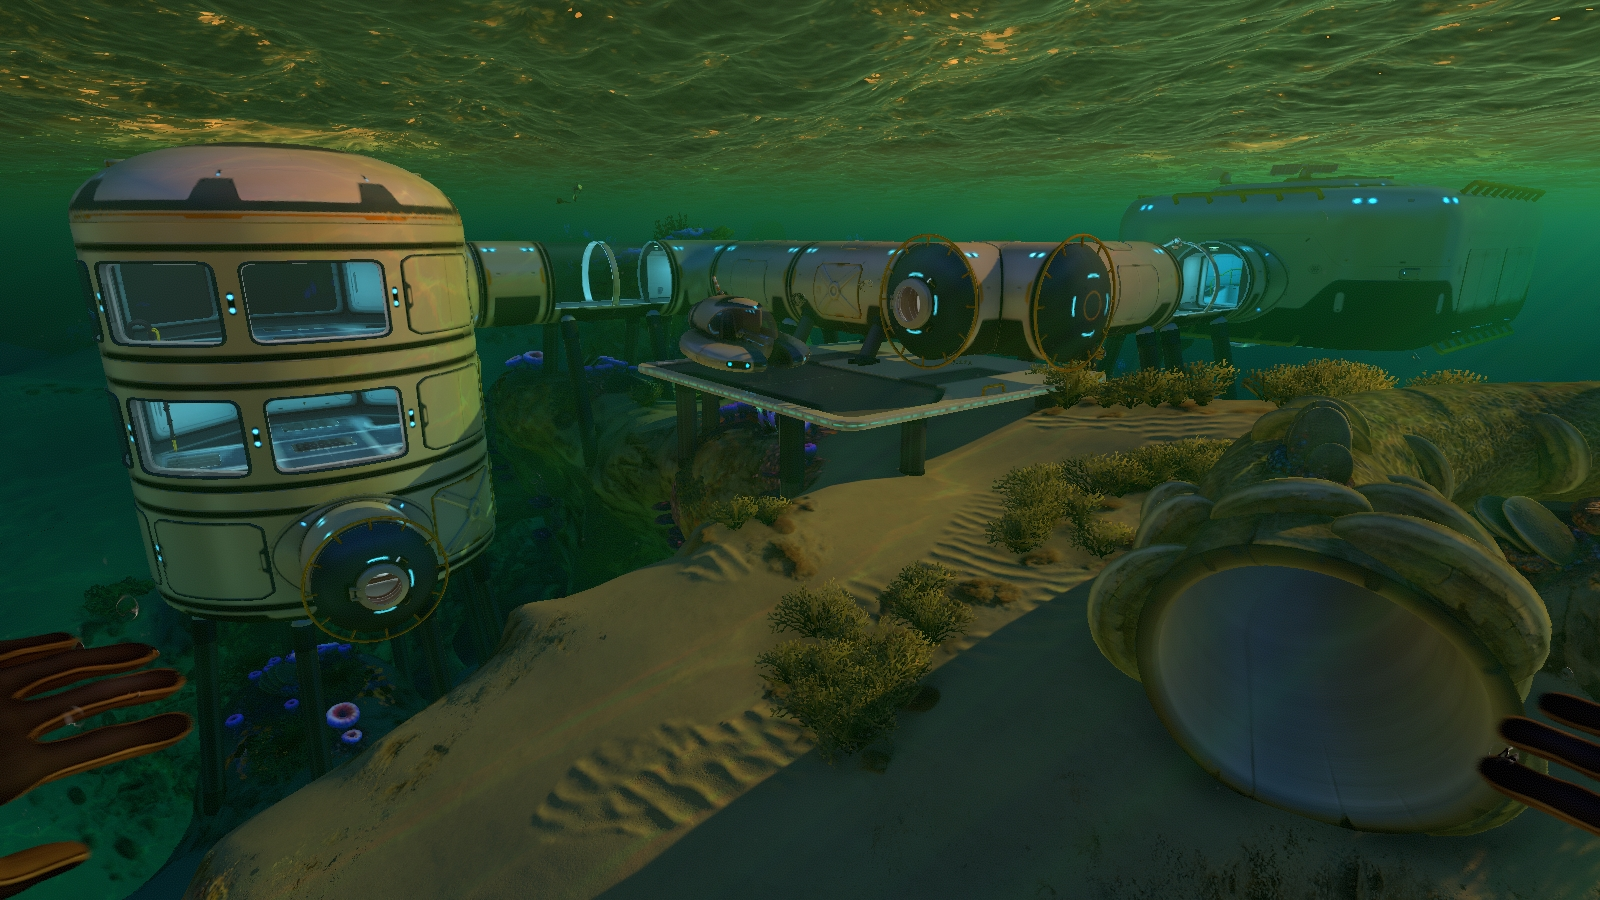 Subnautica Scanner Room On Top Of Multipurpose Room – Subnautica full important fragment guide/list.